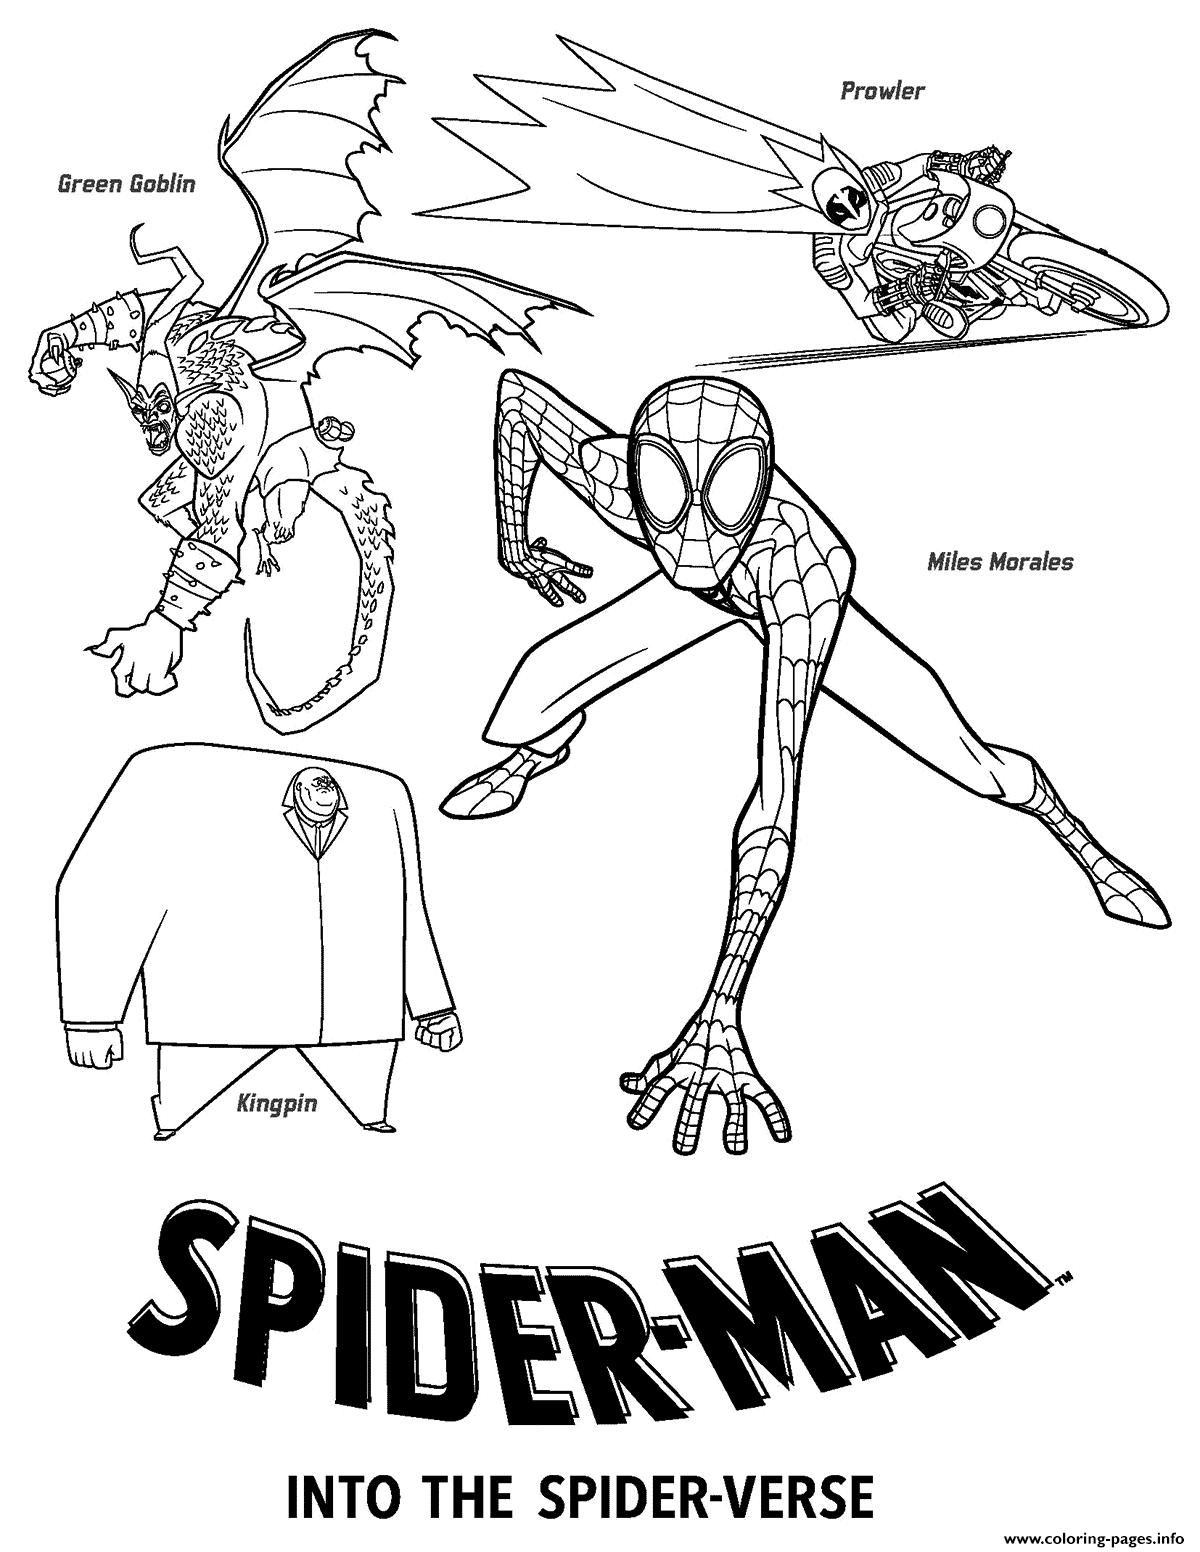 Print Spider Man Into The Spider Verse Villains Coloring Pages Spiderman Coloring Coloring Pages Superhero Coloring